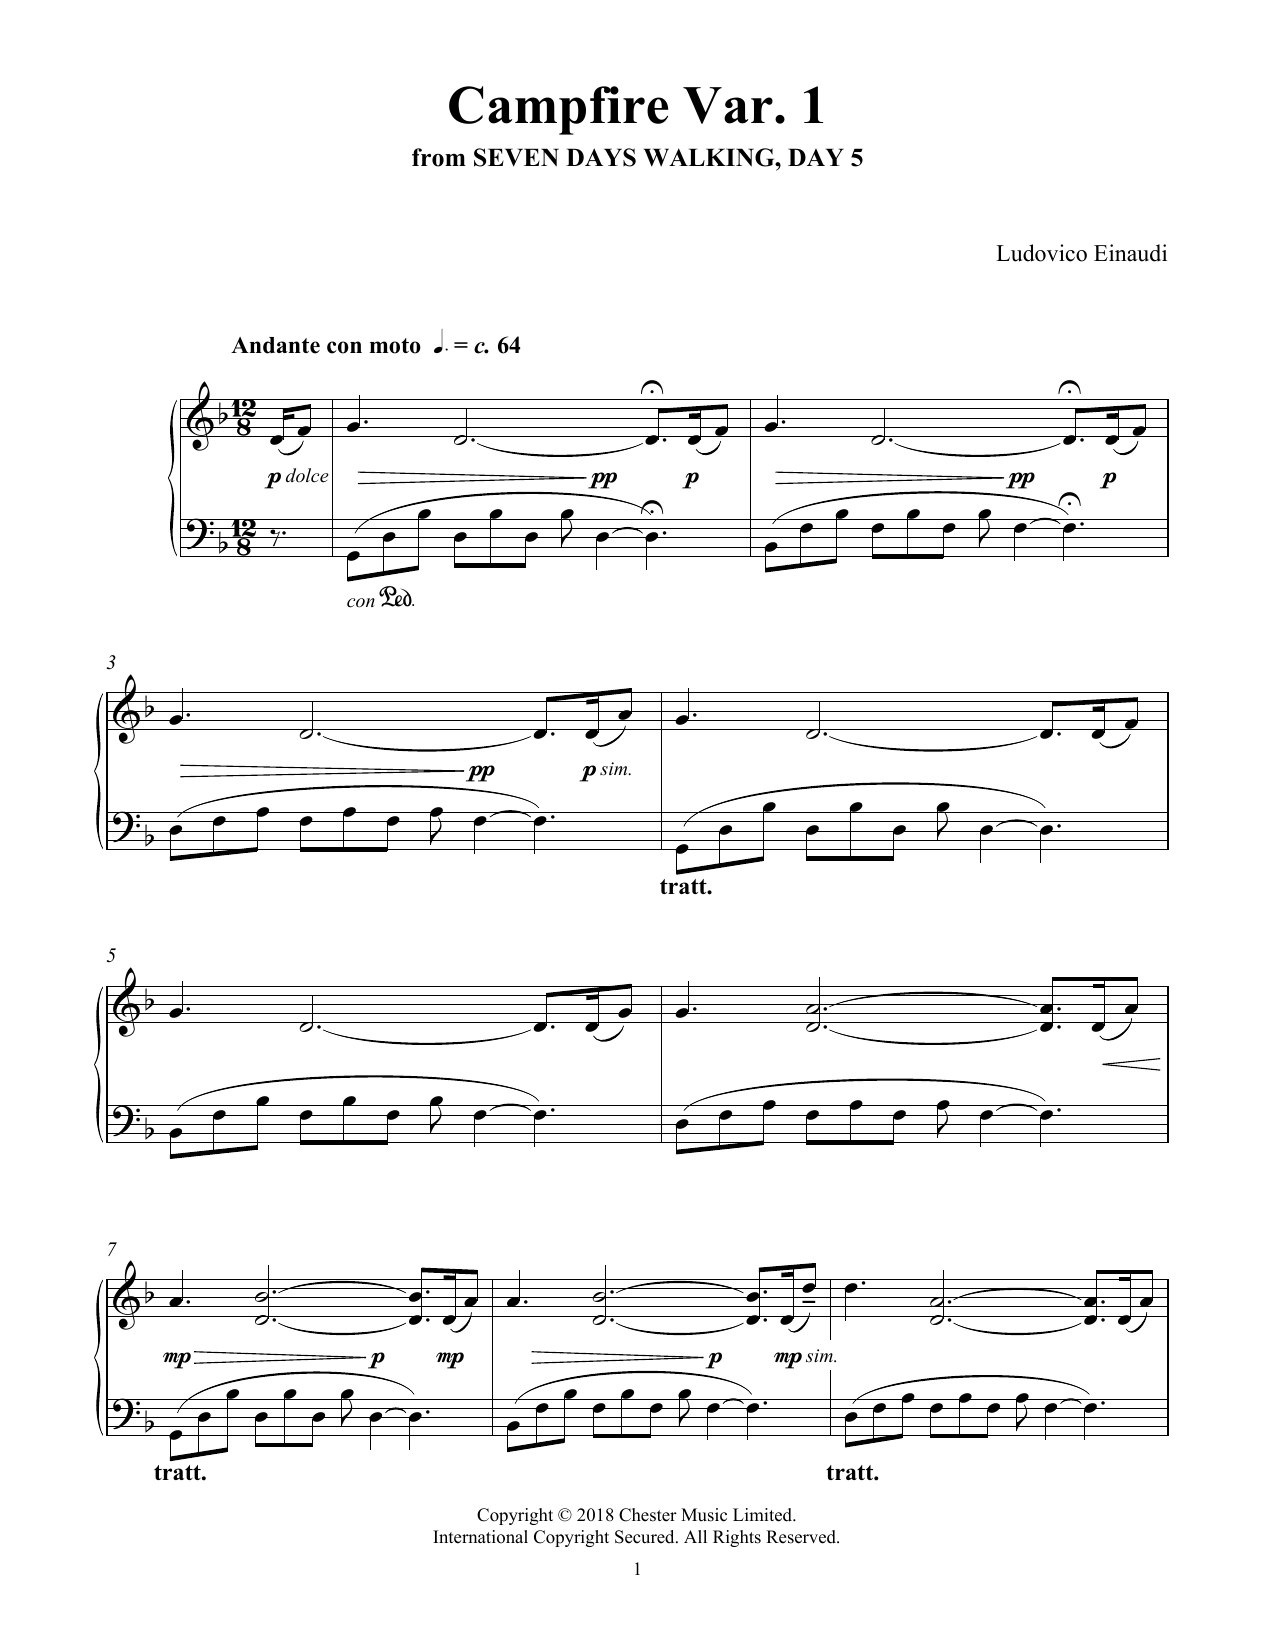 Ludovico Einaudi Campfire Var. 1 (from Seven Days Walking: Day 5) sheet music notes and chords